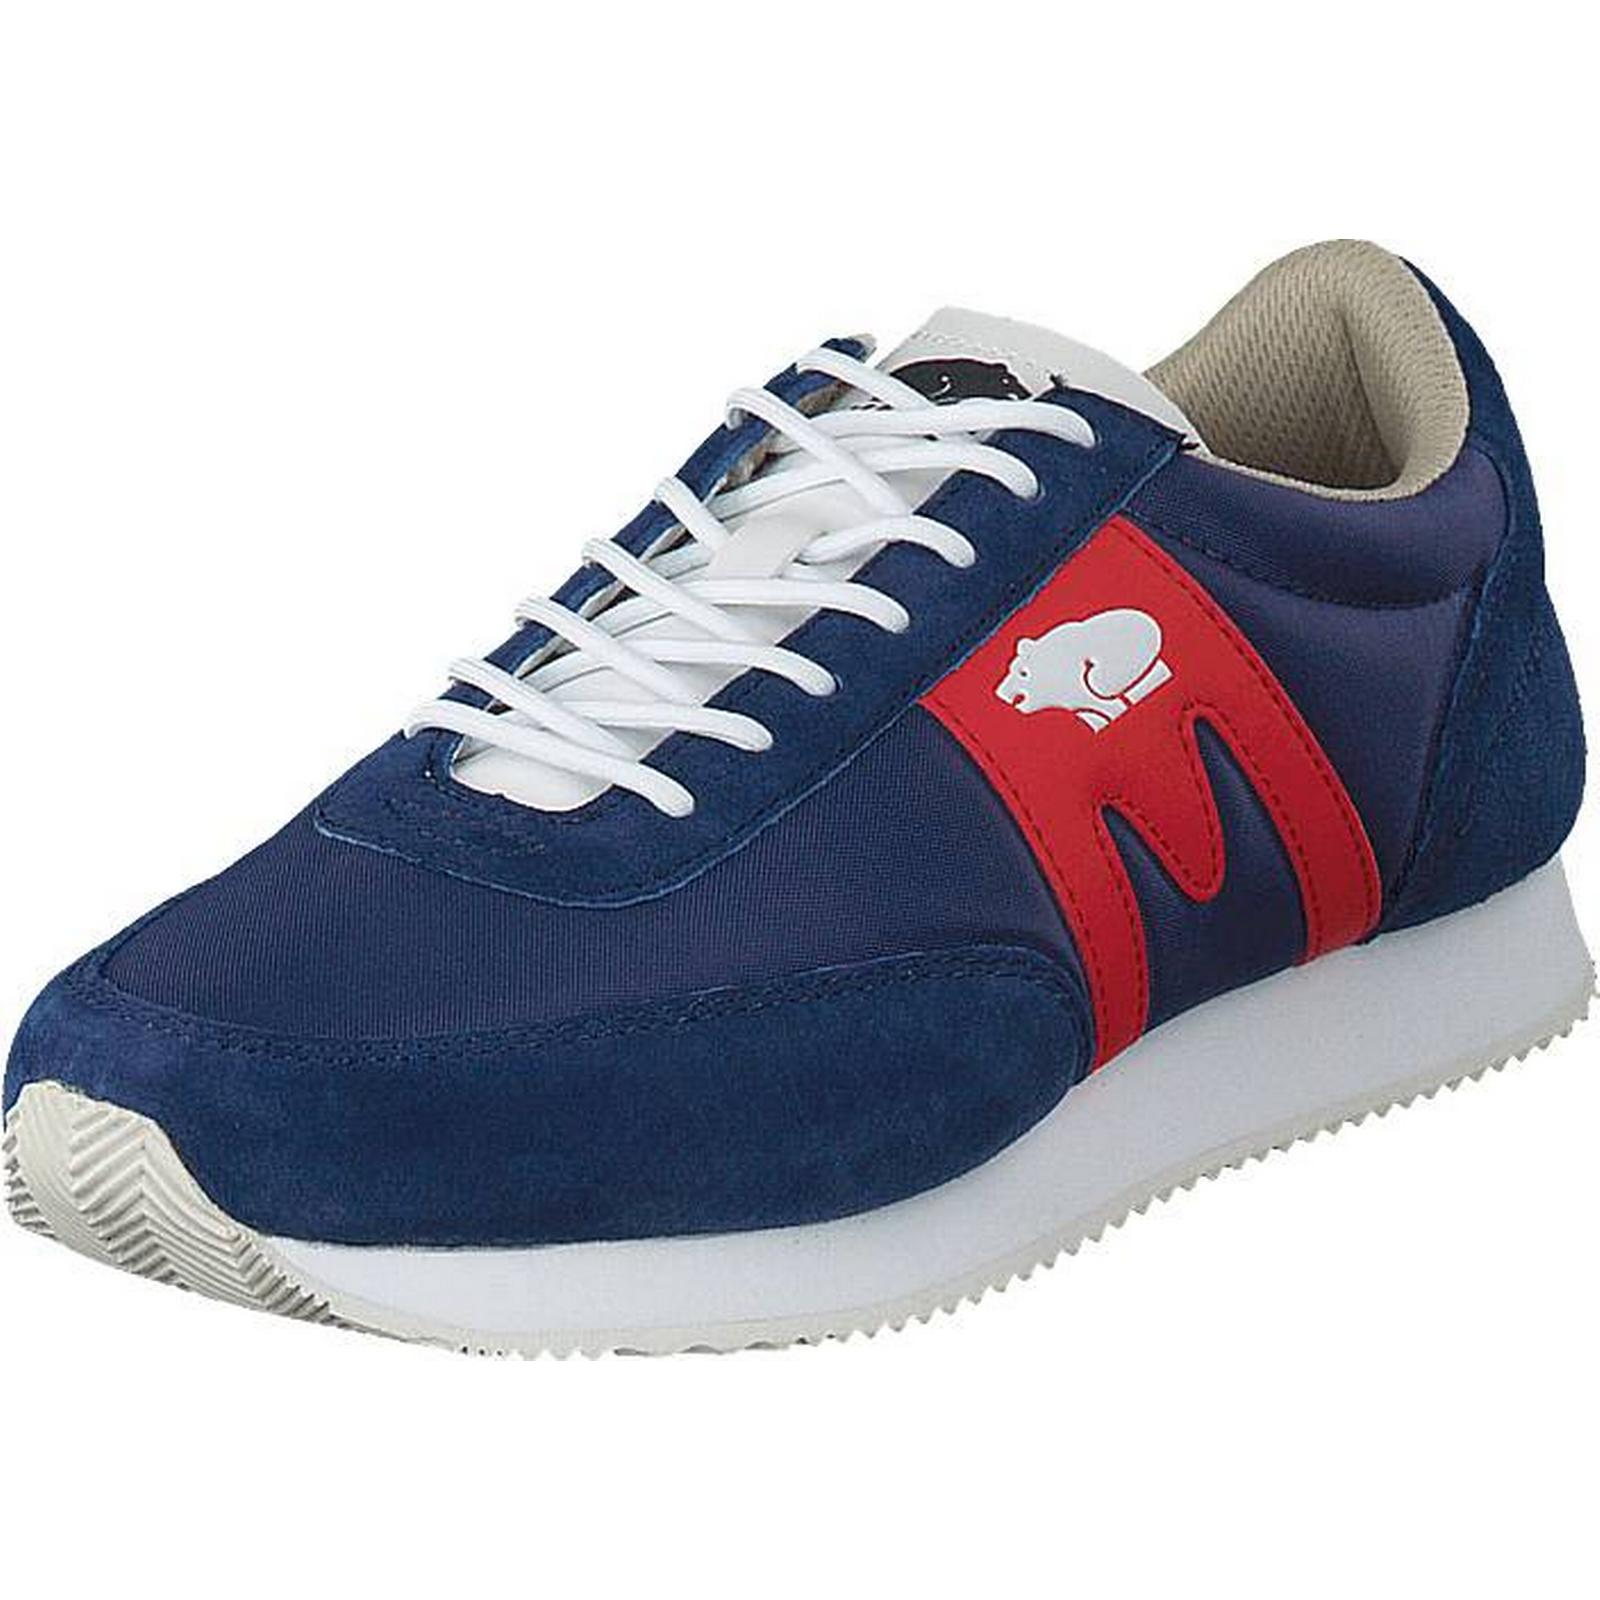 Karhu Albatross Deep Deep Albatross Cobalt - Fiery Reed, Shoes, Trainers & Sport Shoes , Trainers, Blue, Unisex, 36 1fcf22